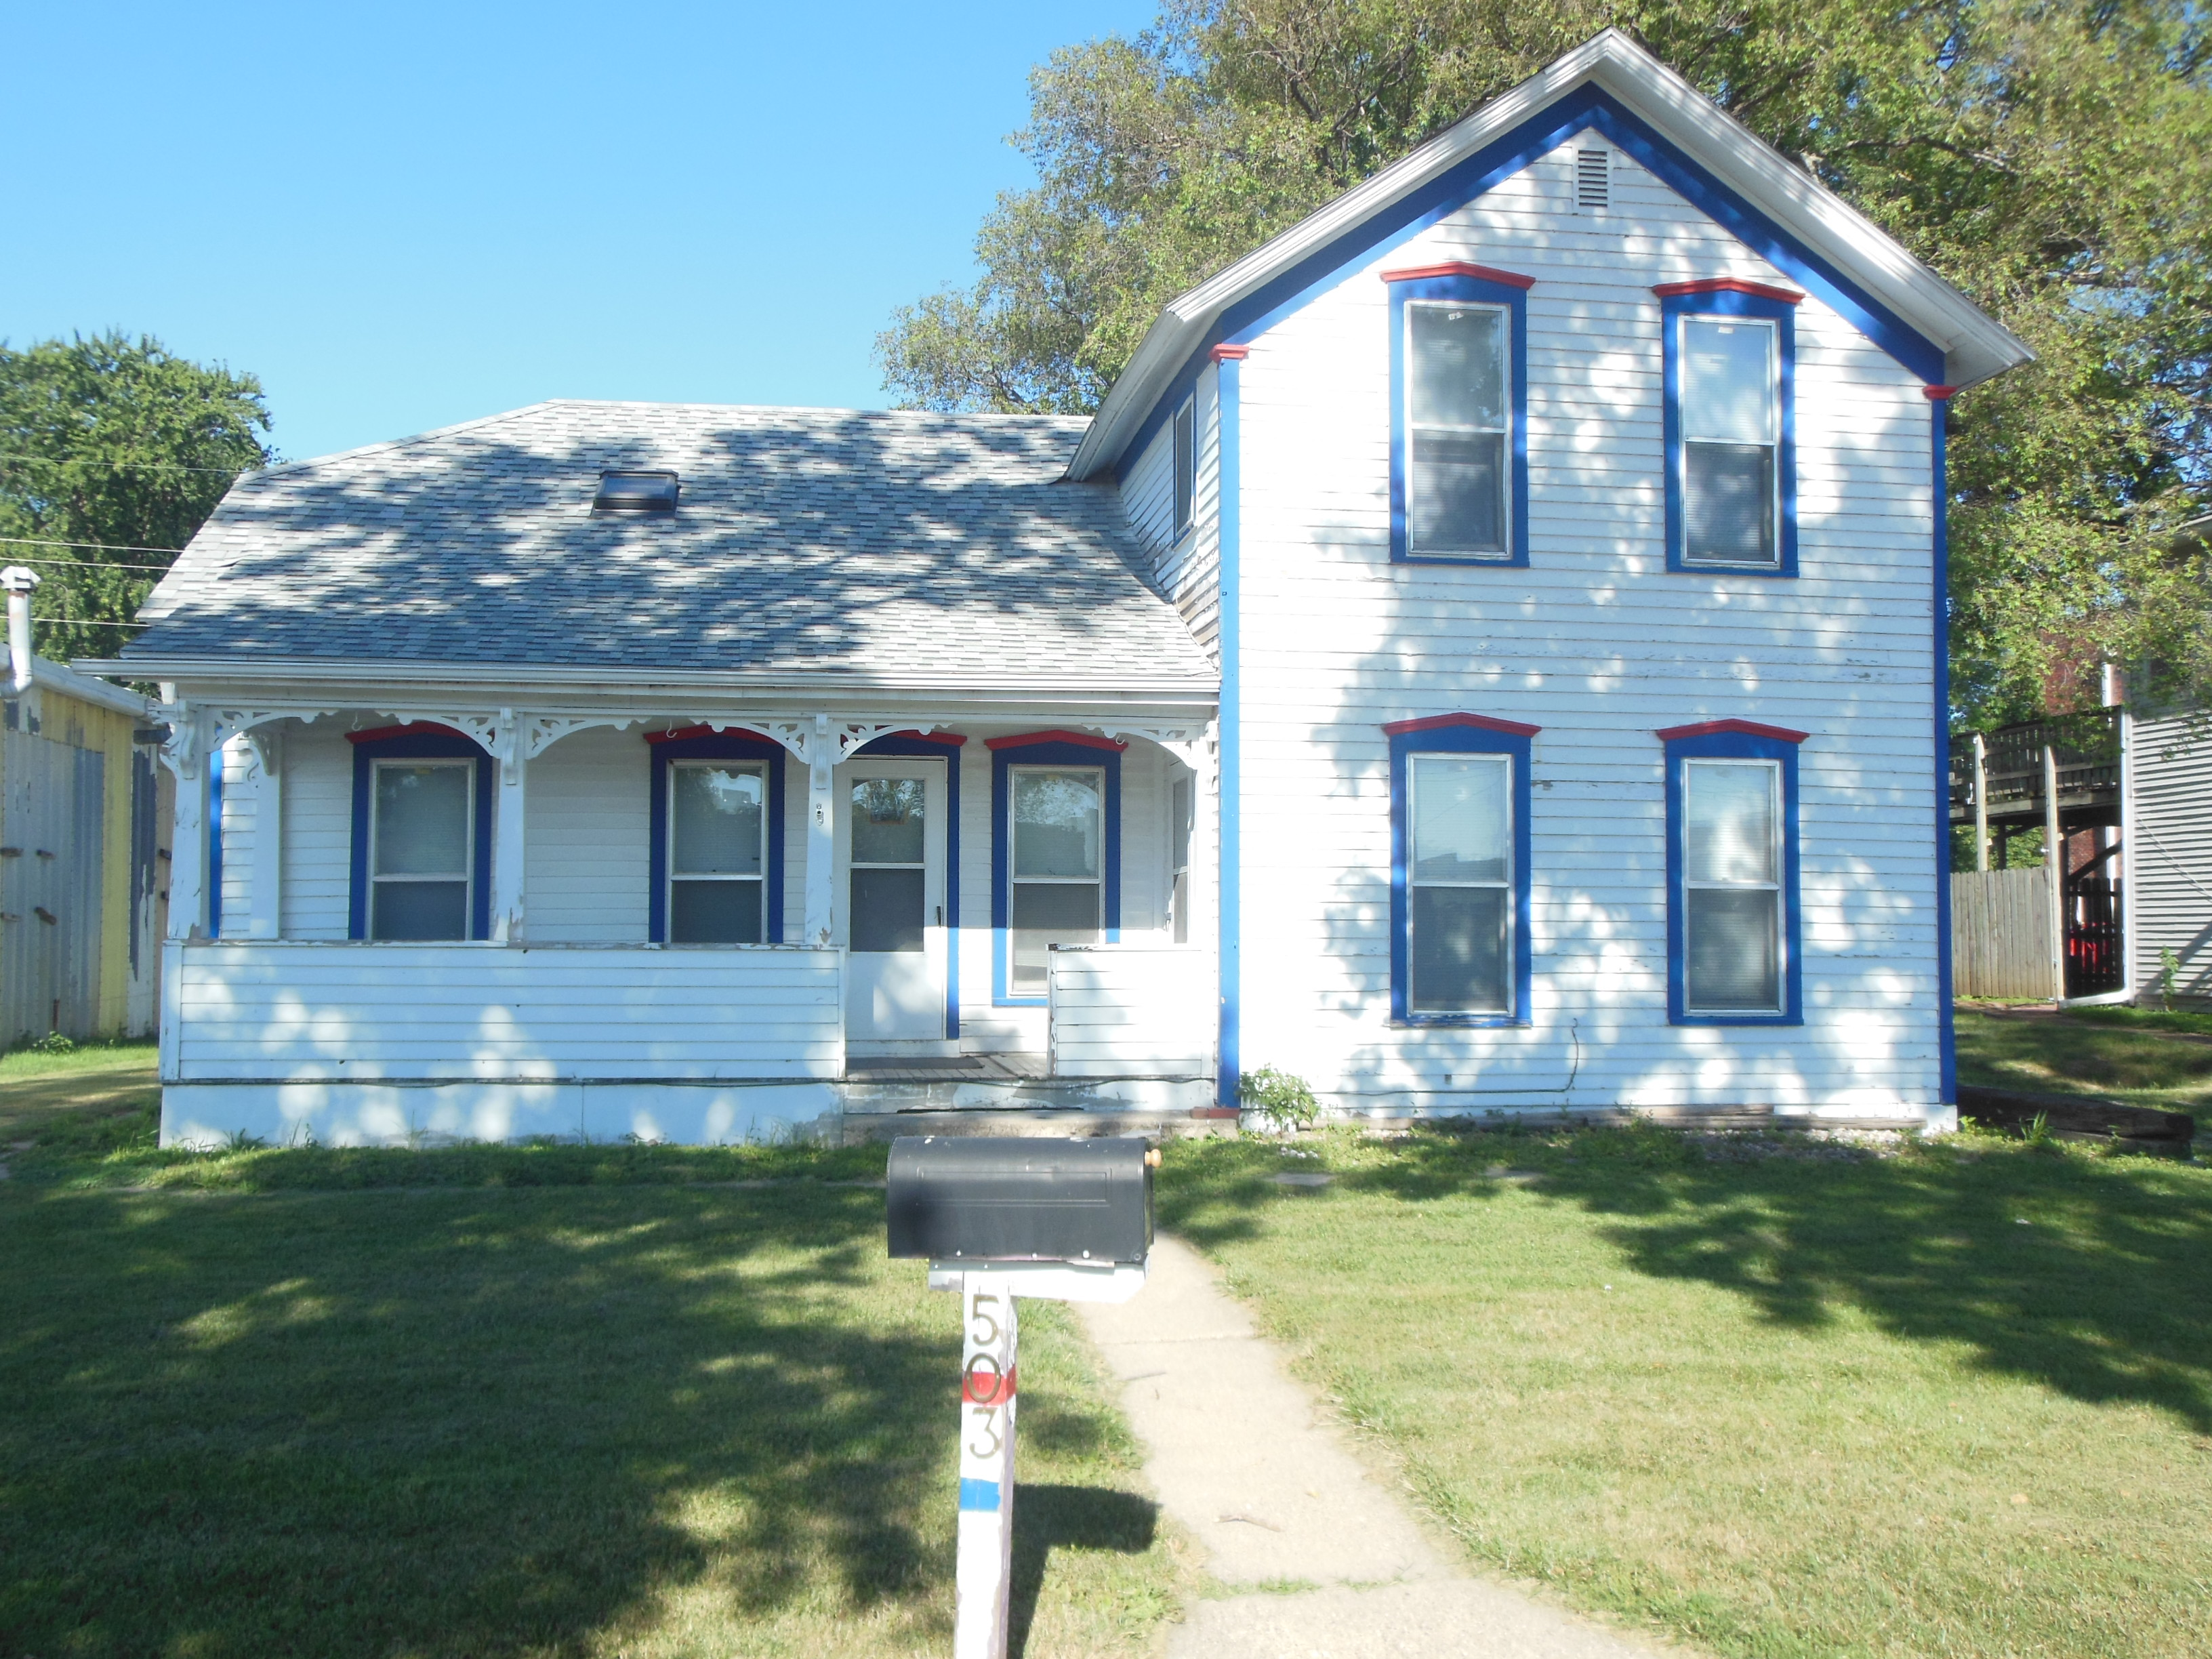 503 Lincolnway St, Woodbine